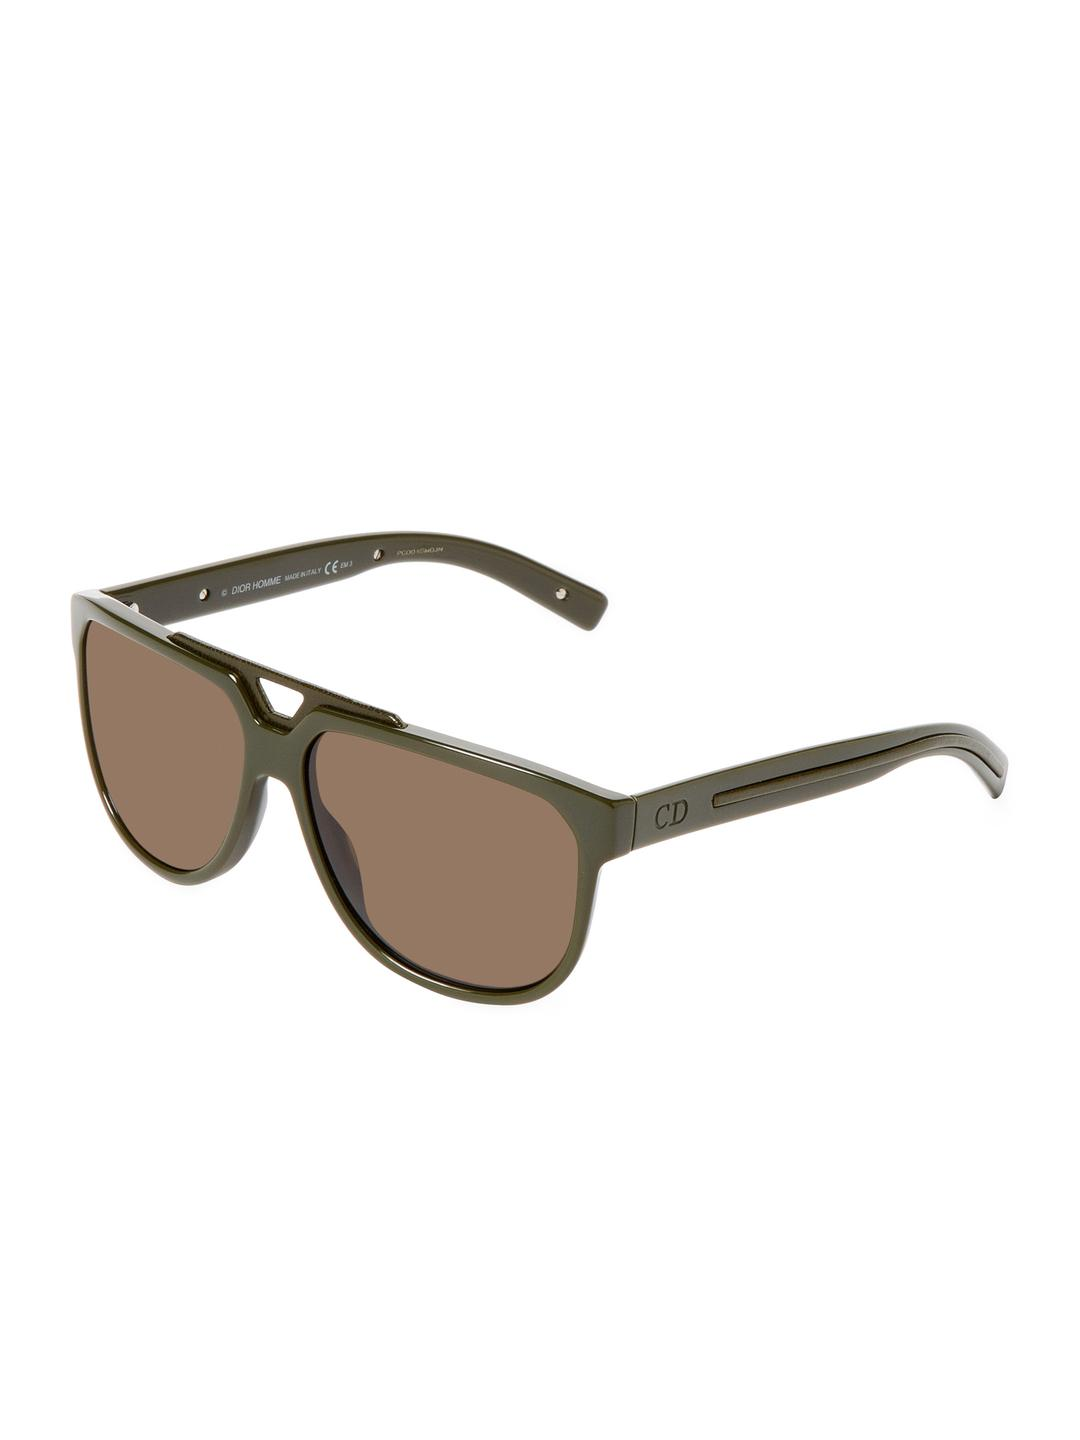 784e764a566 Lyst - Dior Homme Polarized Aviator Frame in Green for Men